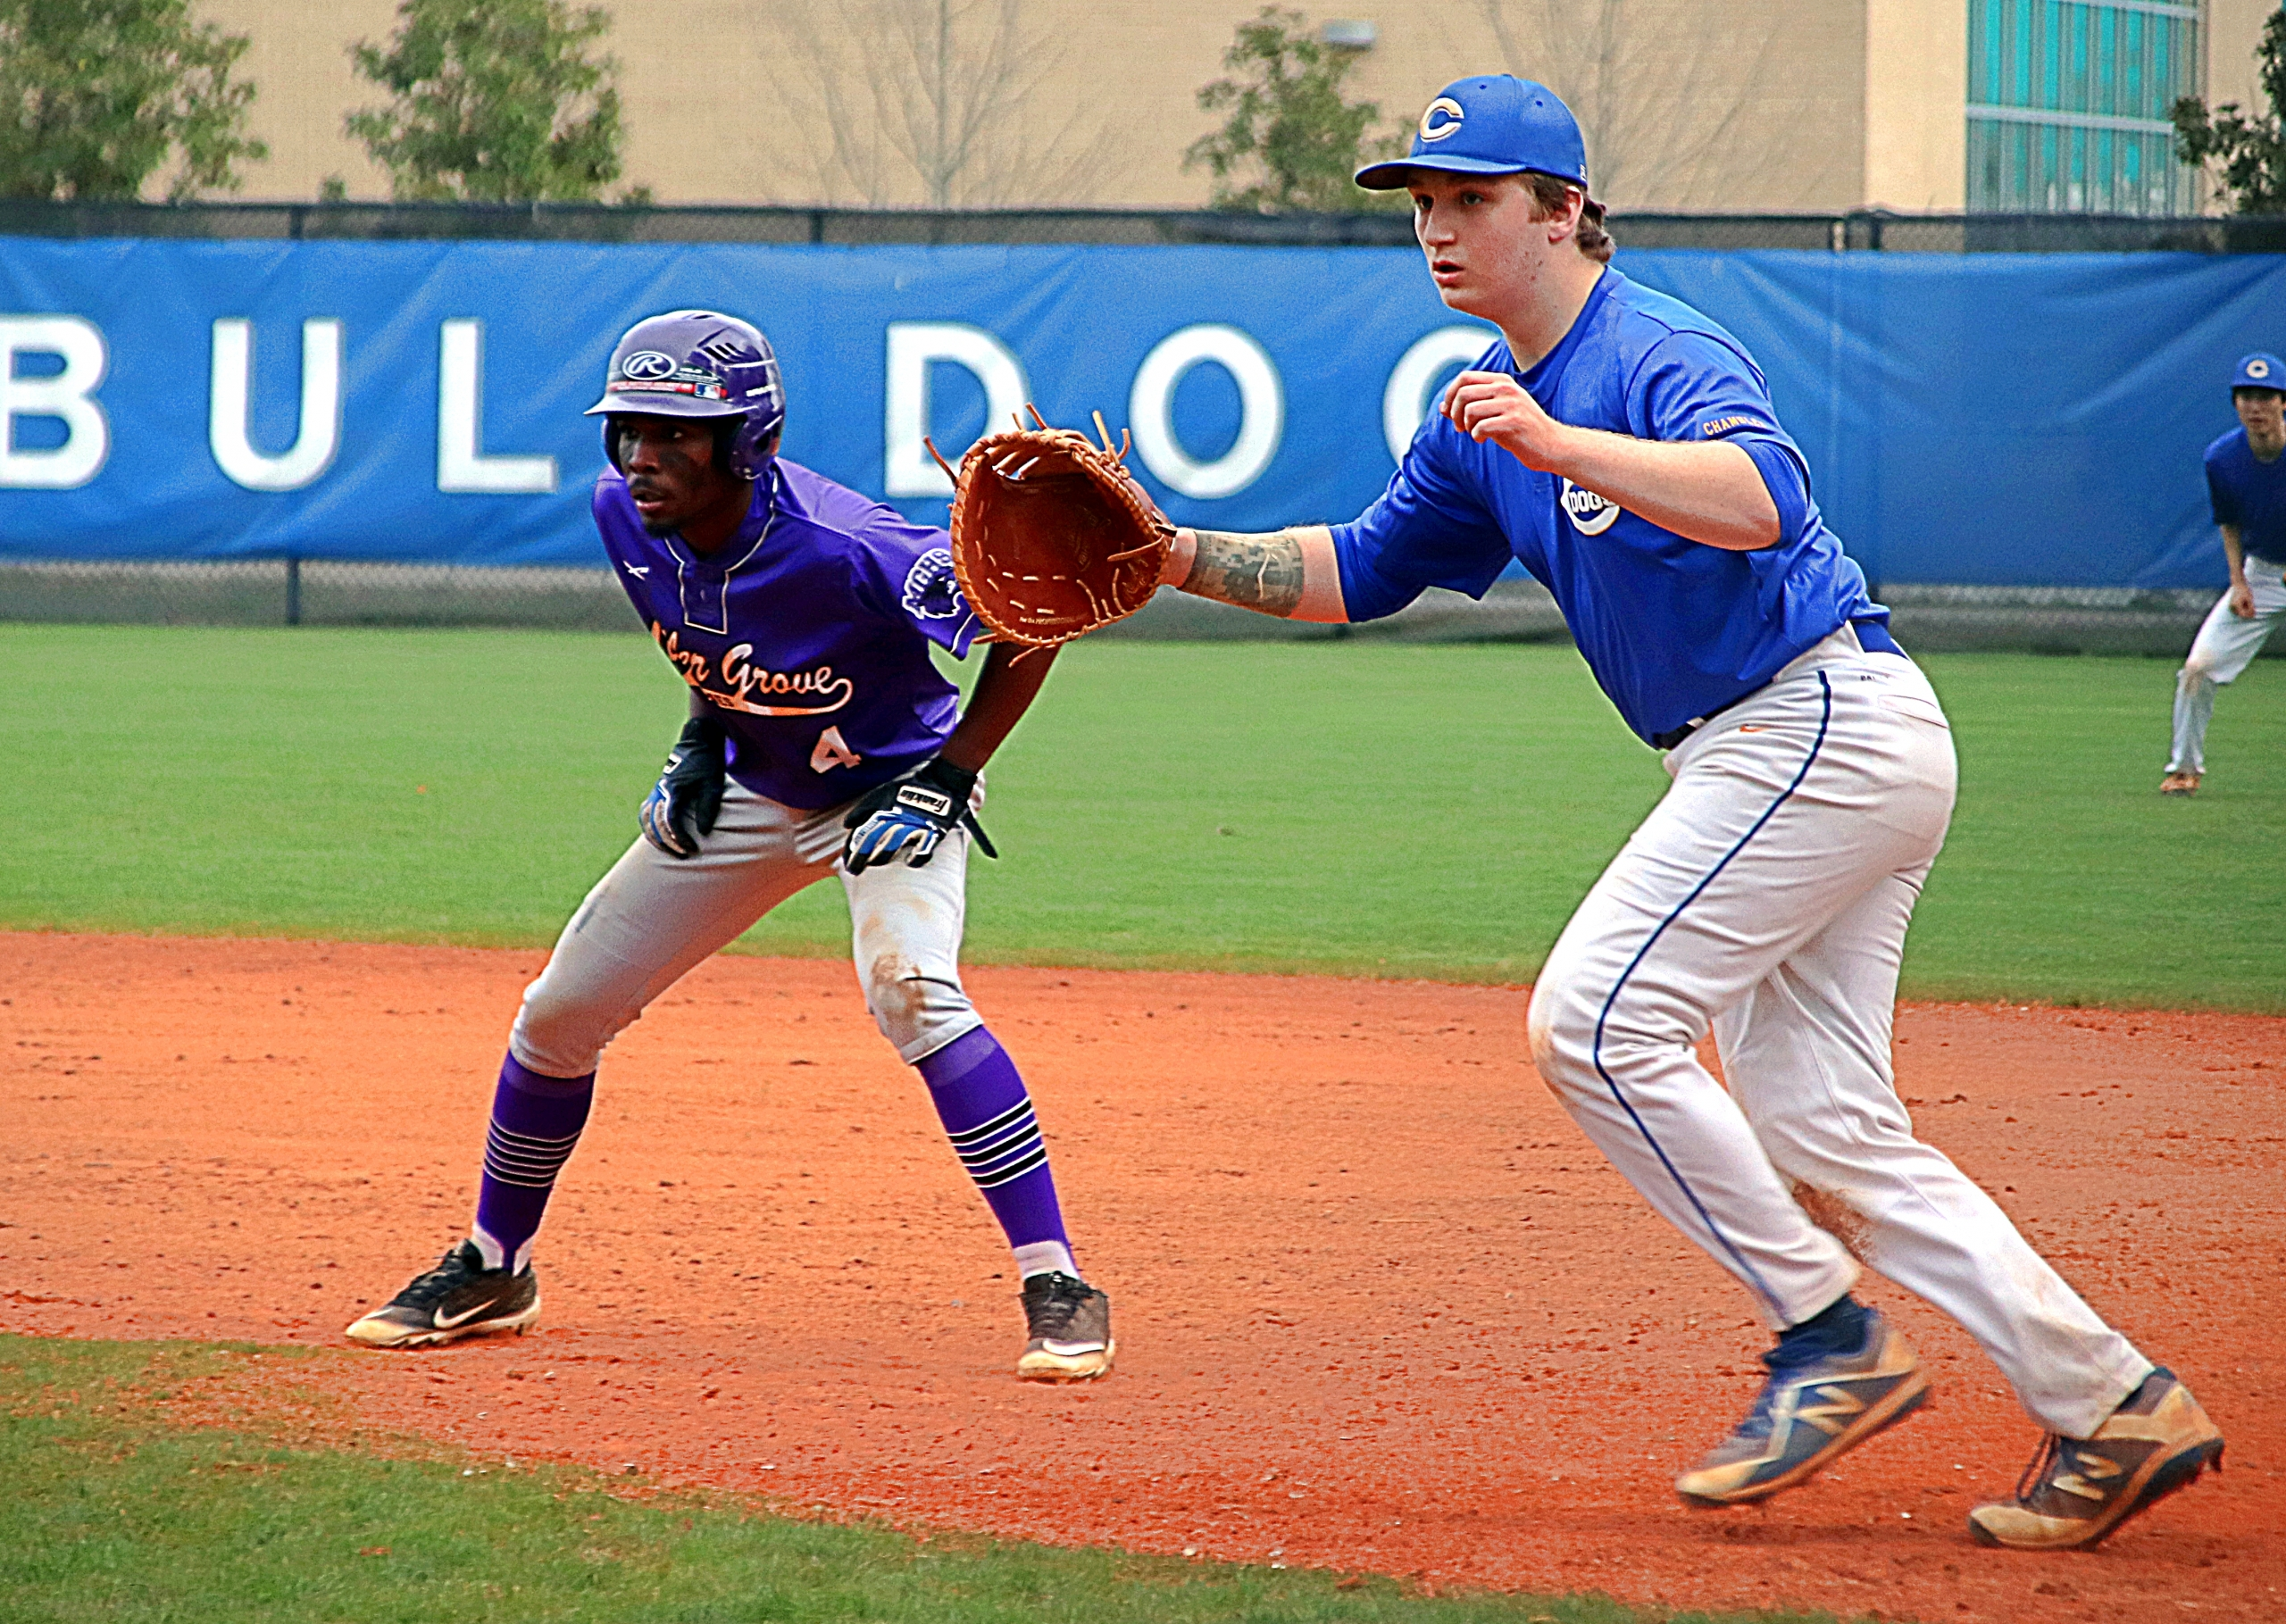 Miller Grove's Jakoby Oliver (4) gets a lead off first as Chamblee first baseman Leon Cohen moves to get in his position on defense. (Photo by Mark Brock)